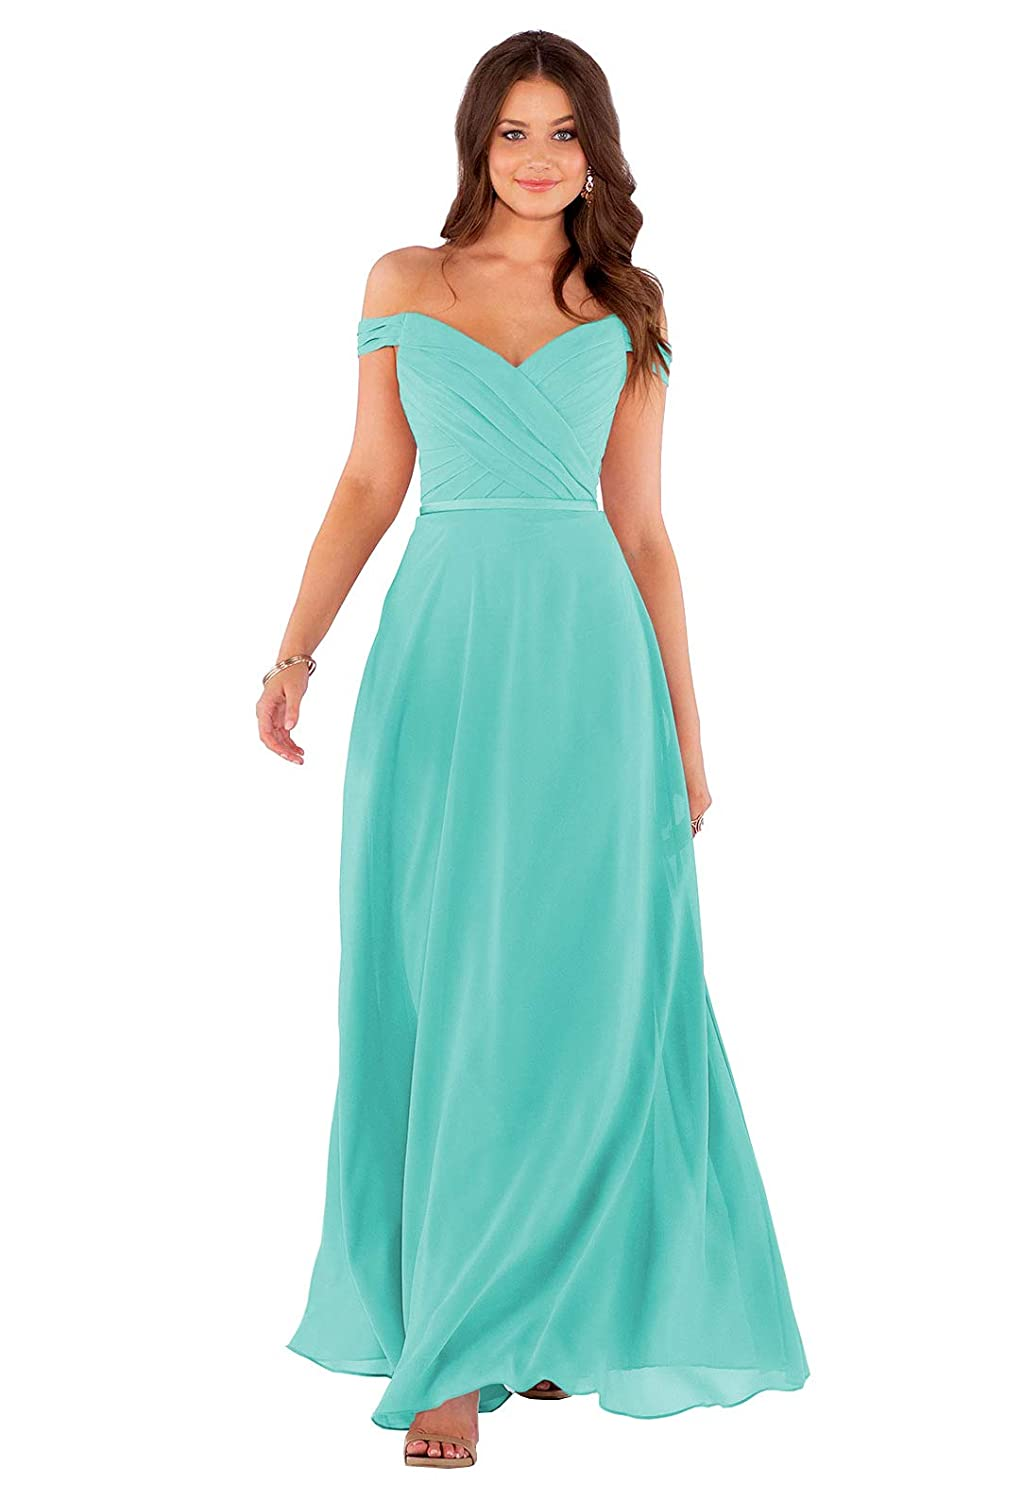 Womens V Neck A-line Pleated Chiffon Bridesmaid Dresses Long Split Front Evening Formal Party Gown